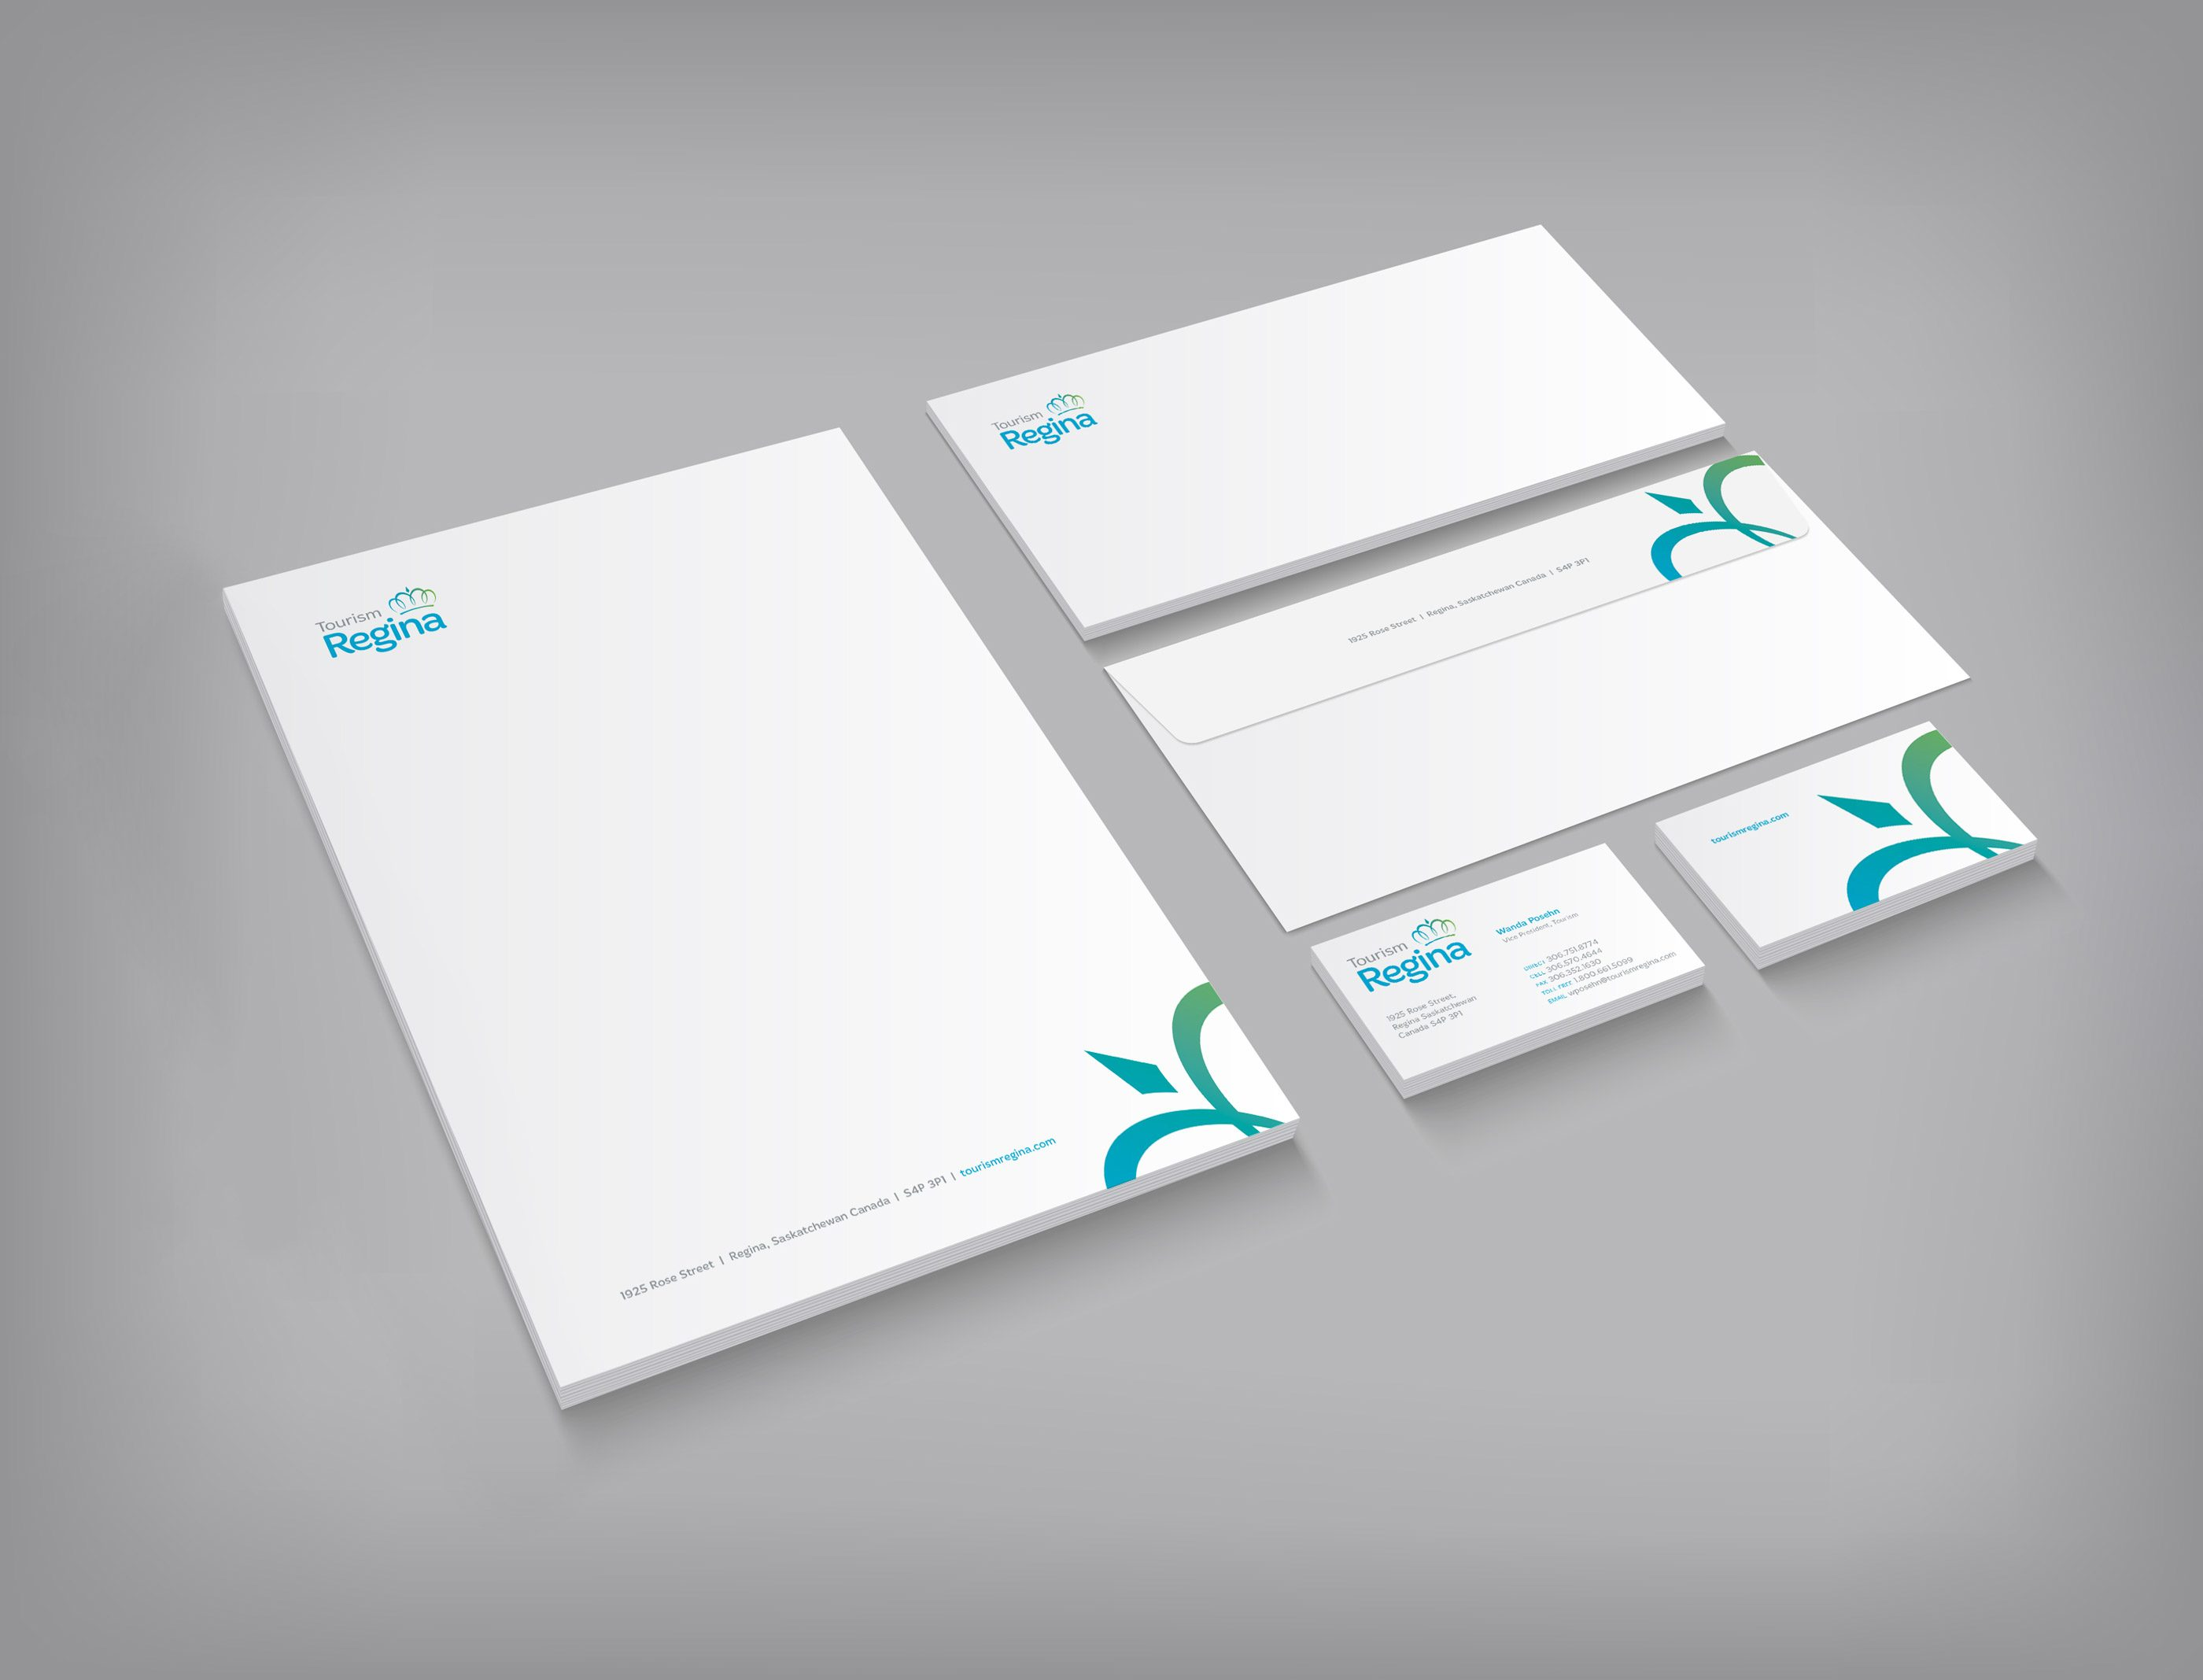 Work - Tourism Regina Stationary